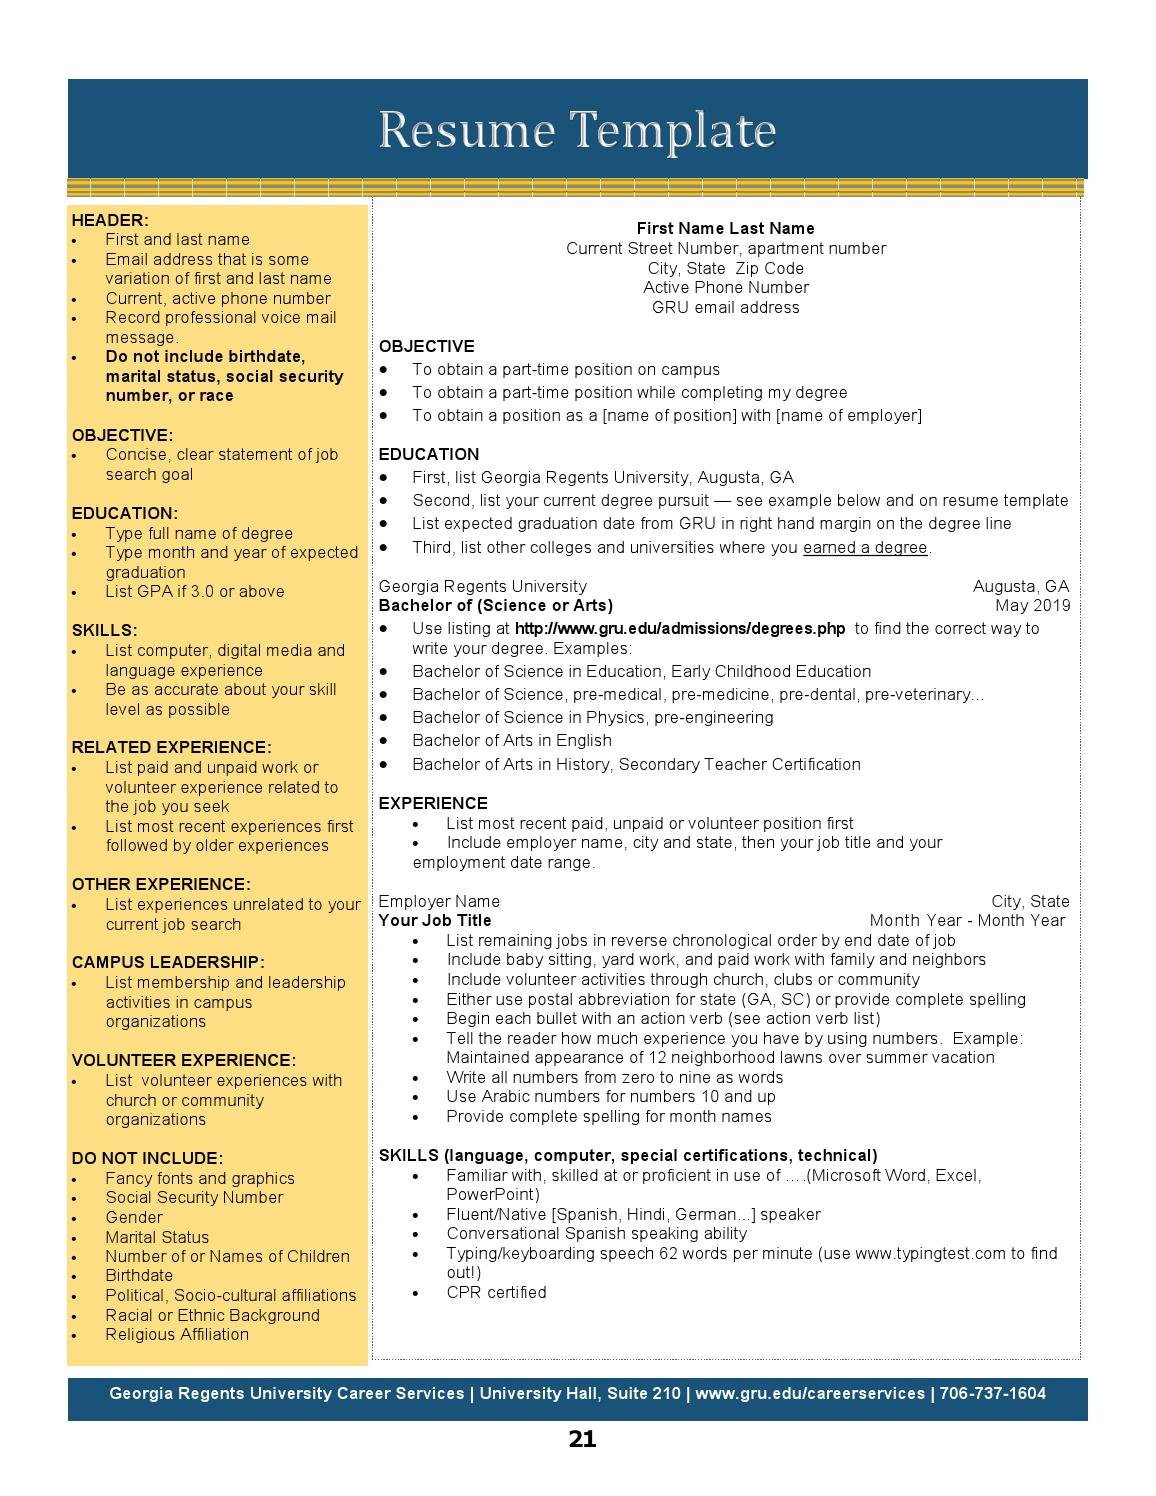 Gru Career Services Career Guide By Augusta University Issuu